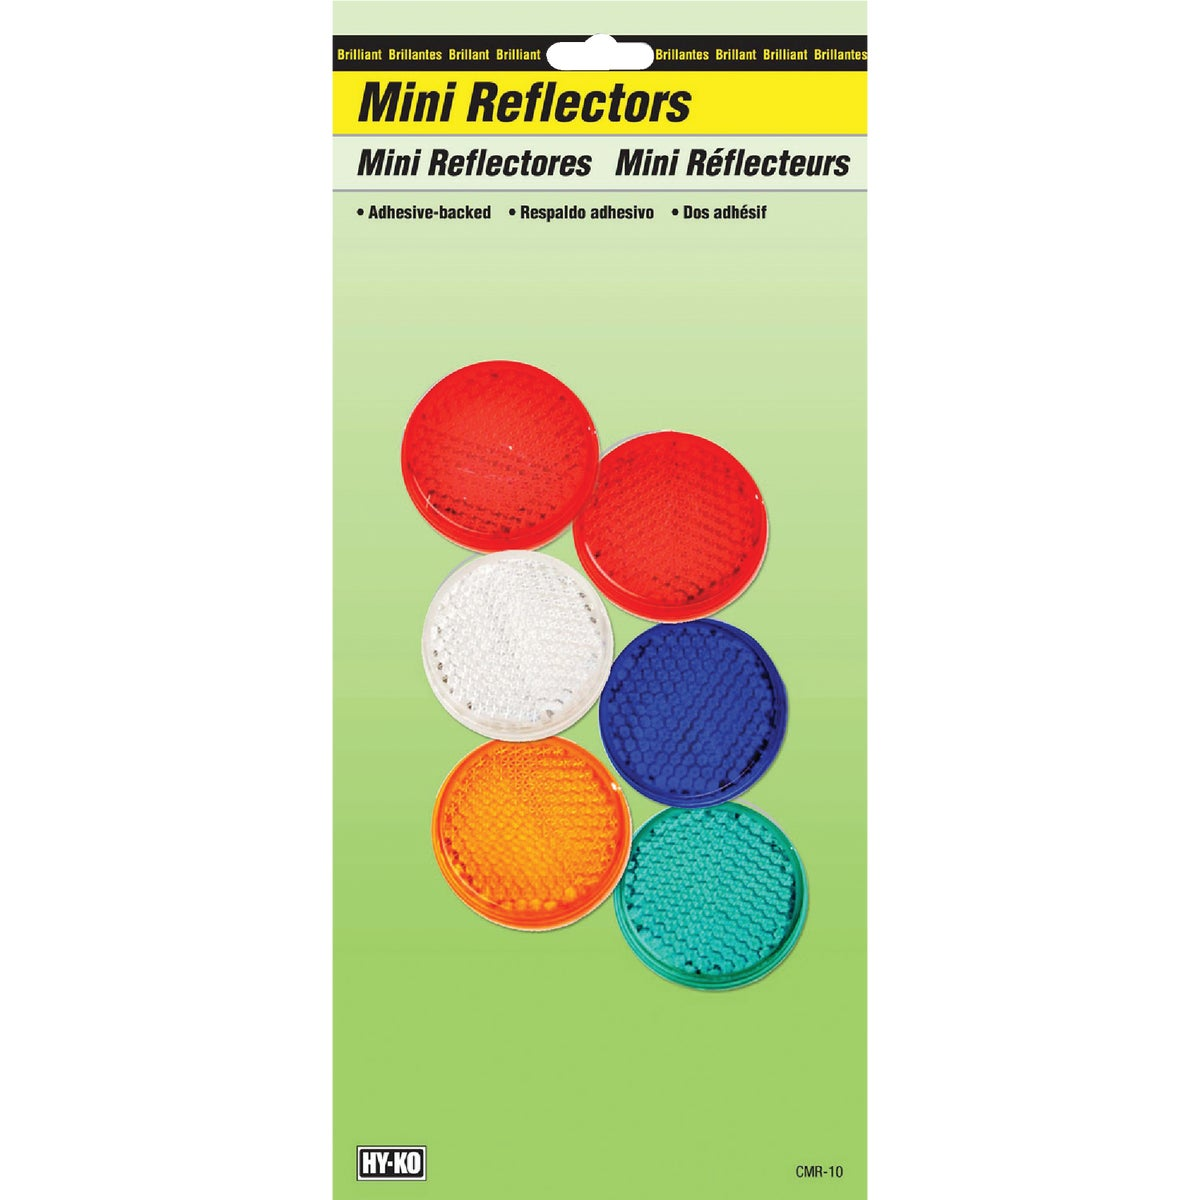 5ASTD MINI RELECTORS - CMR-10 by Hy Ko Prods Co